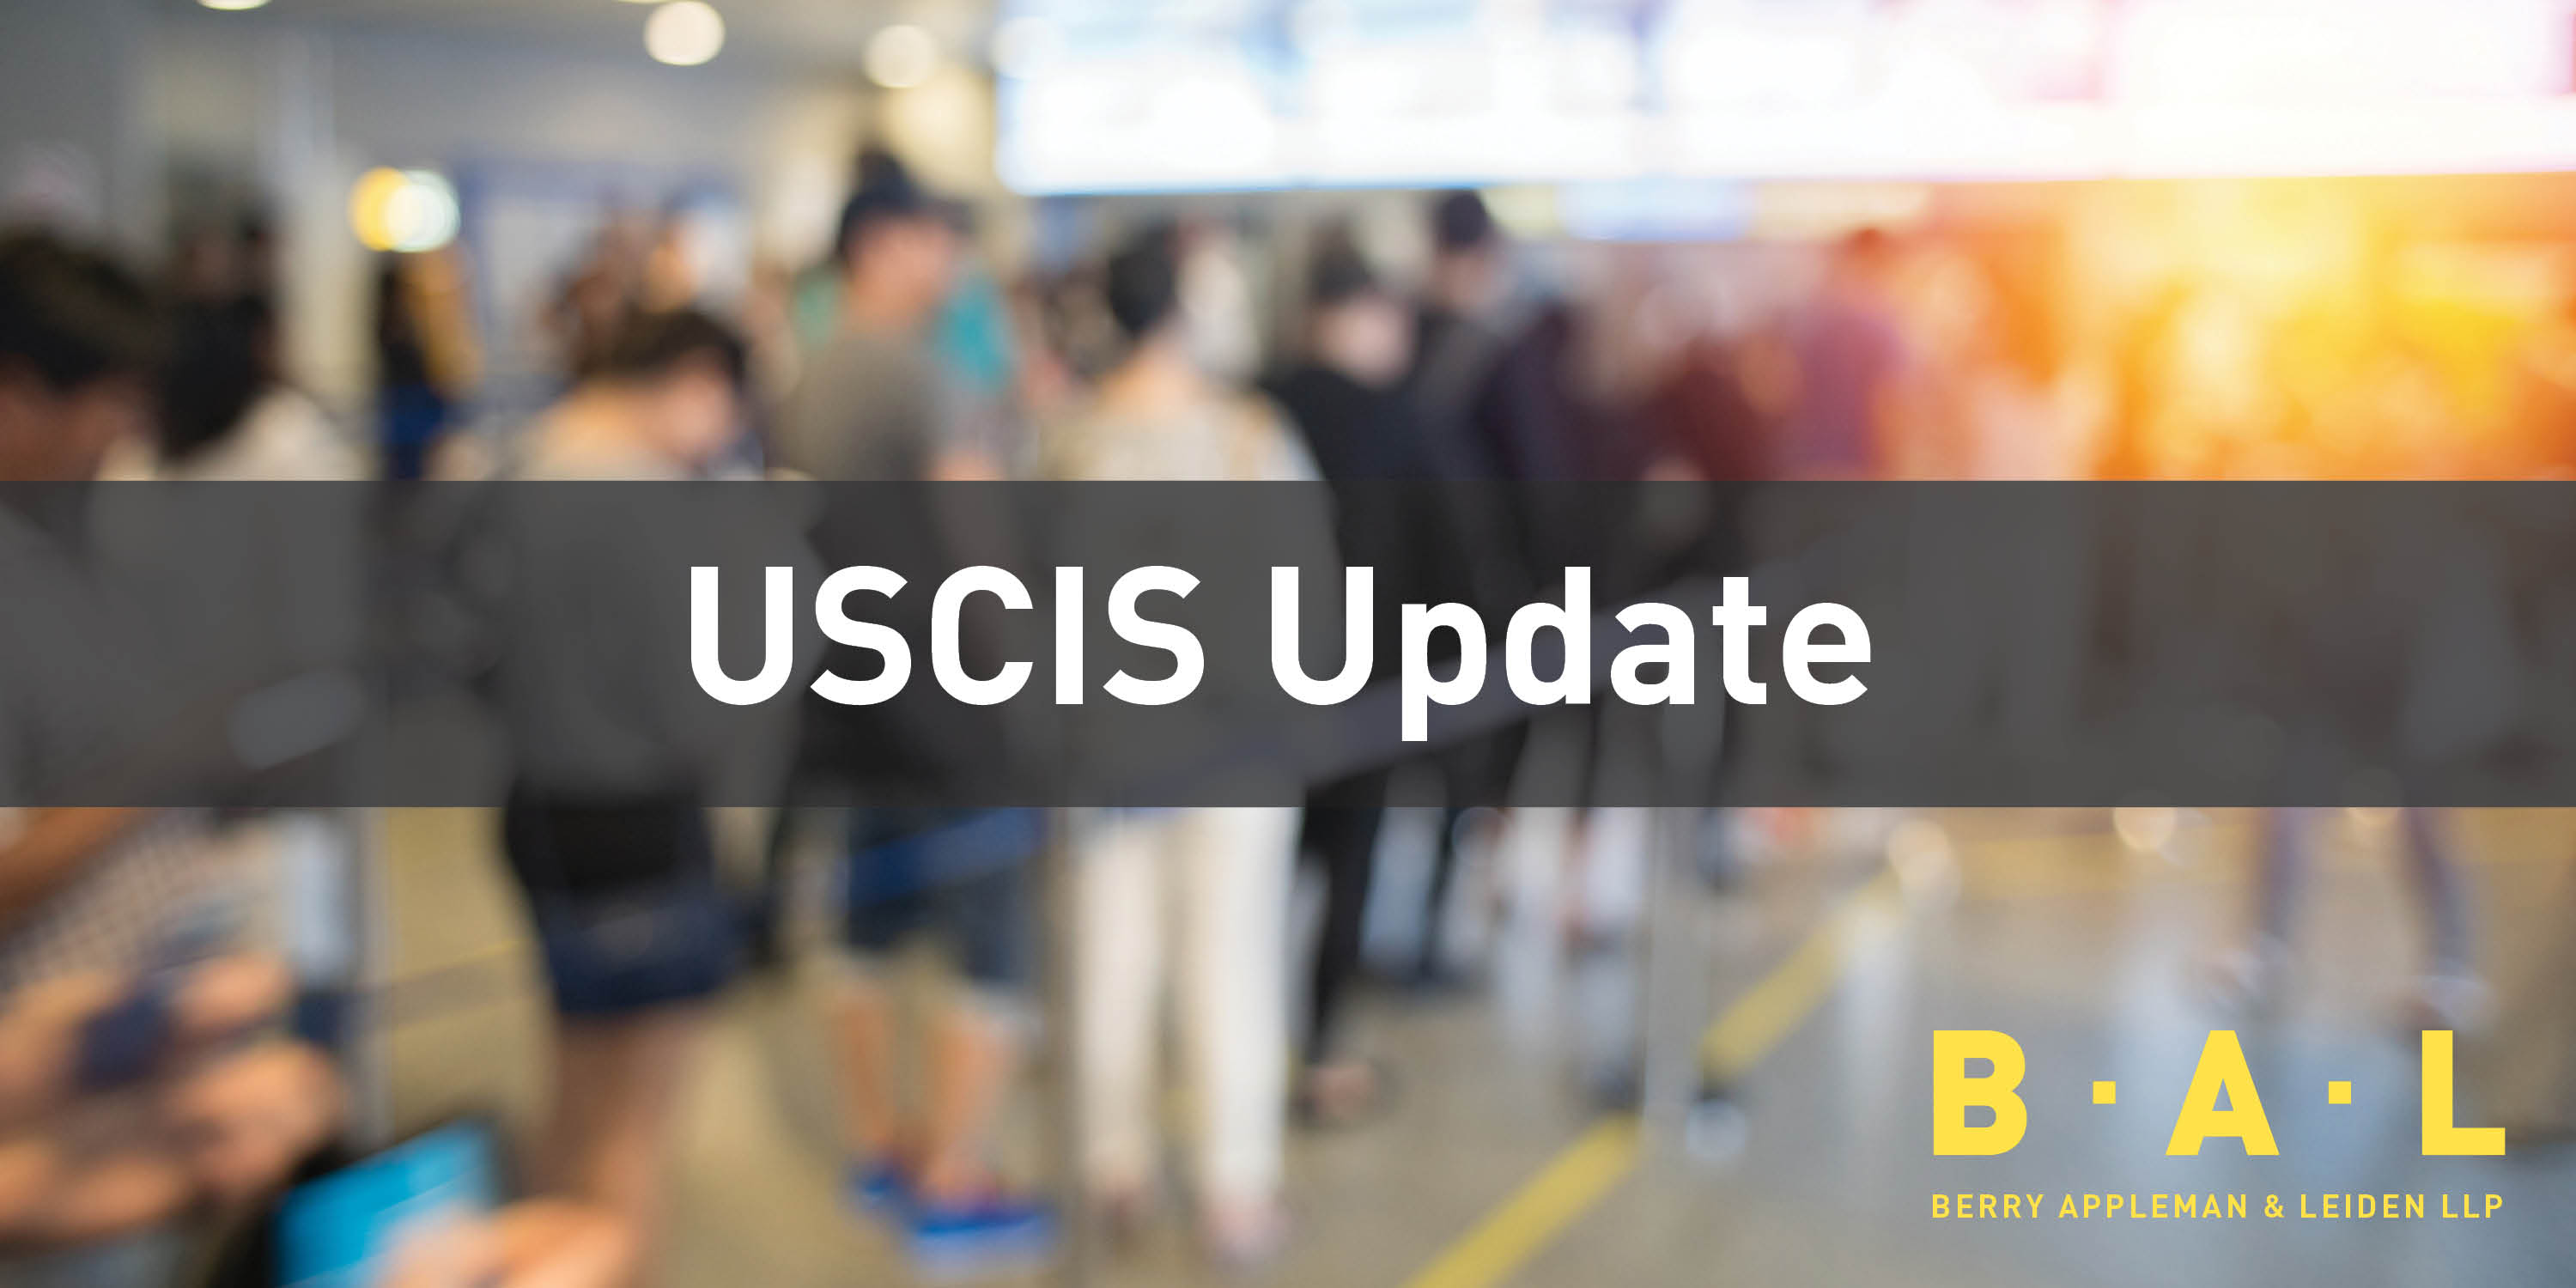 New Uscis Policy On Notices To Appear To Be Implemented